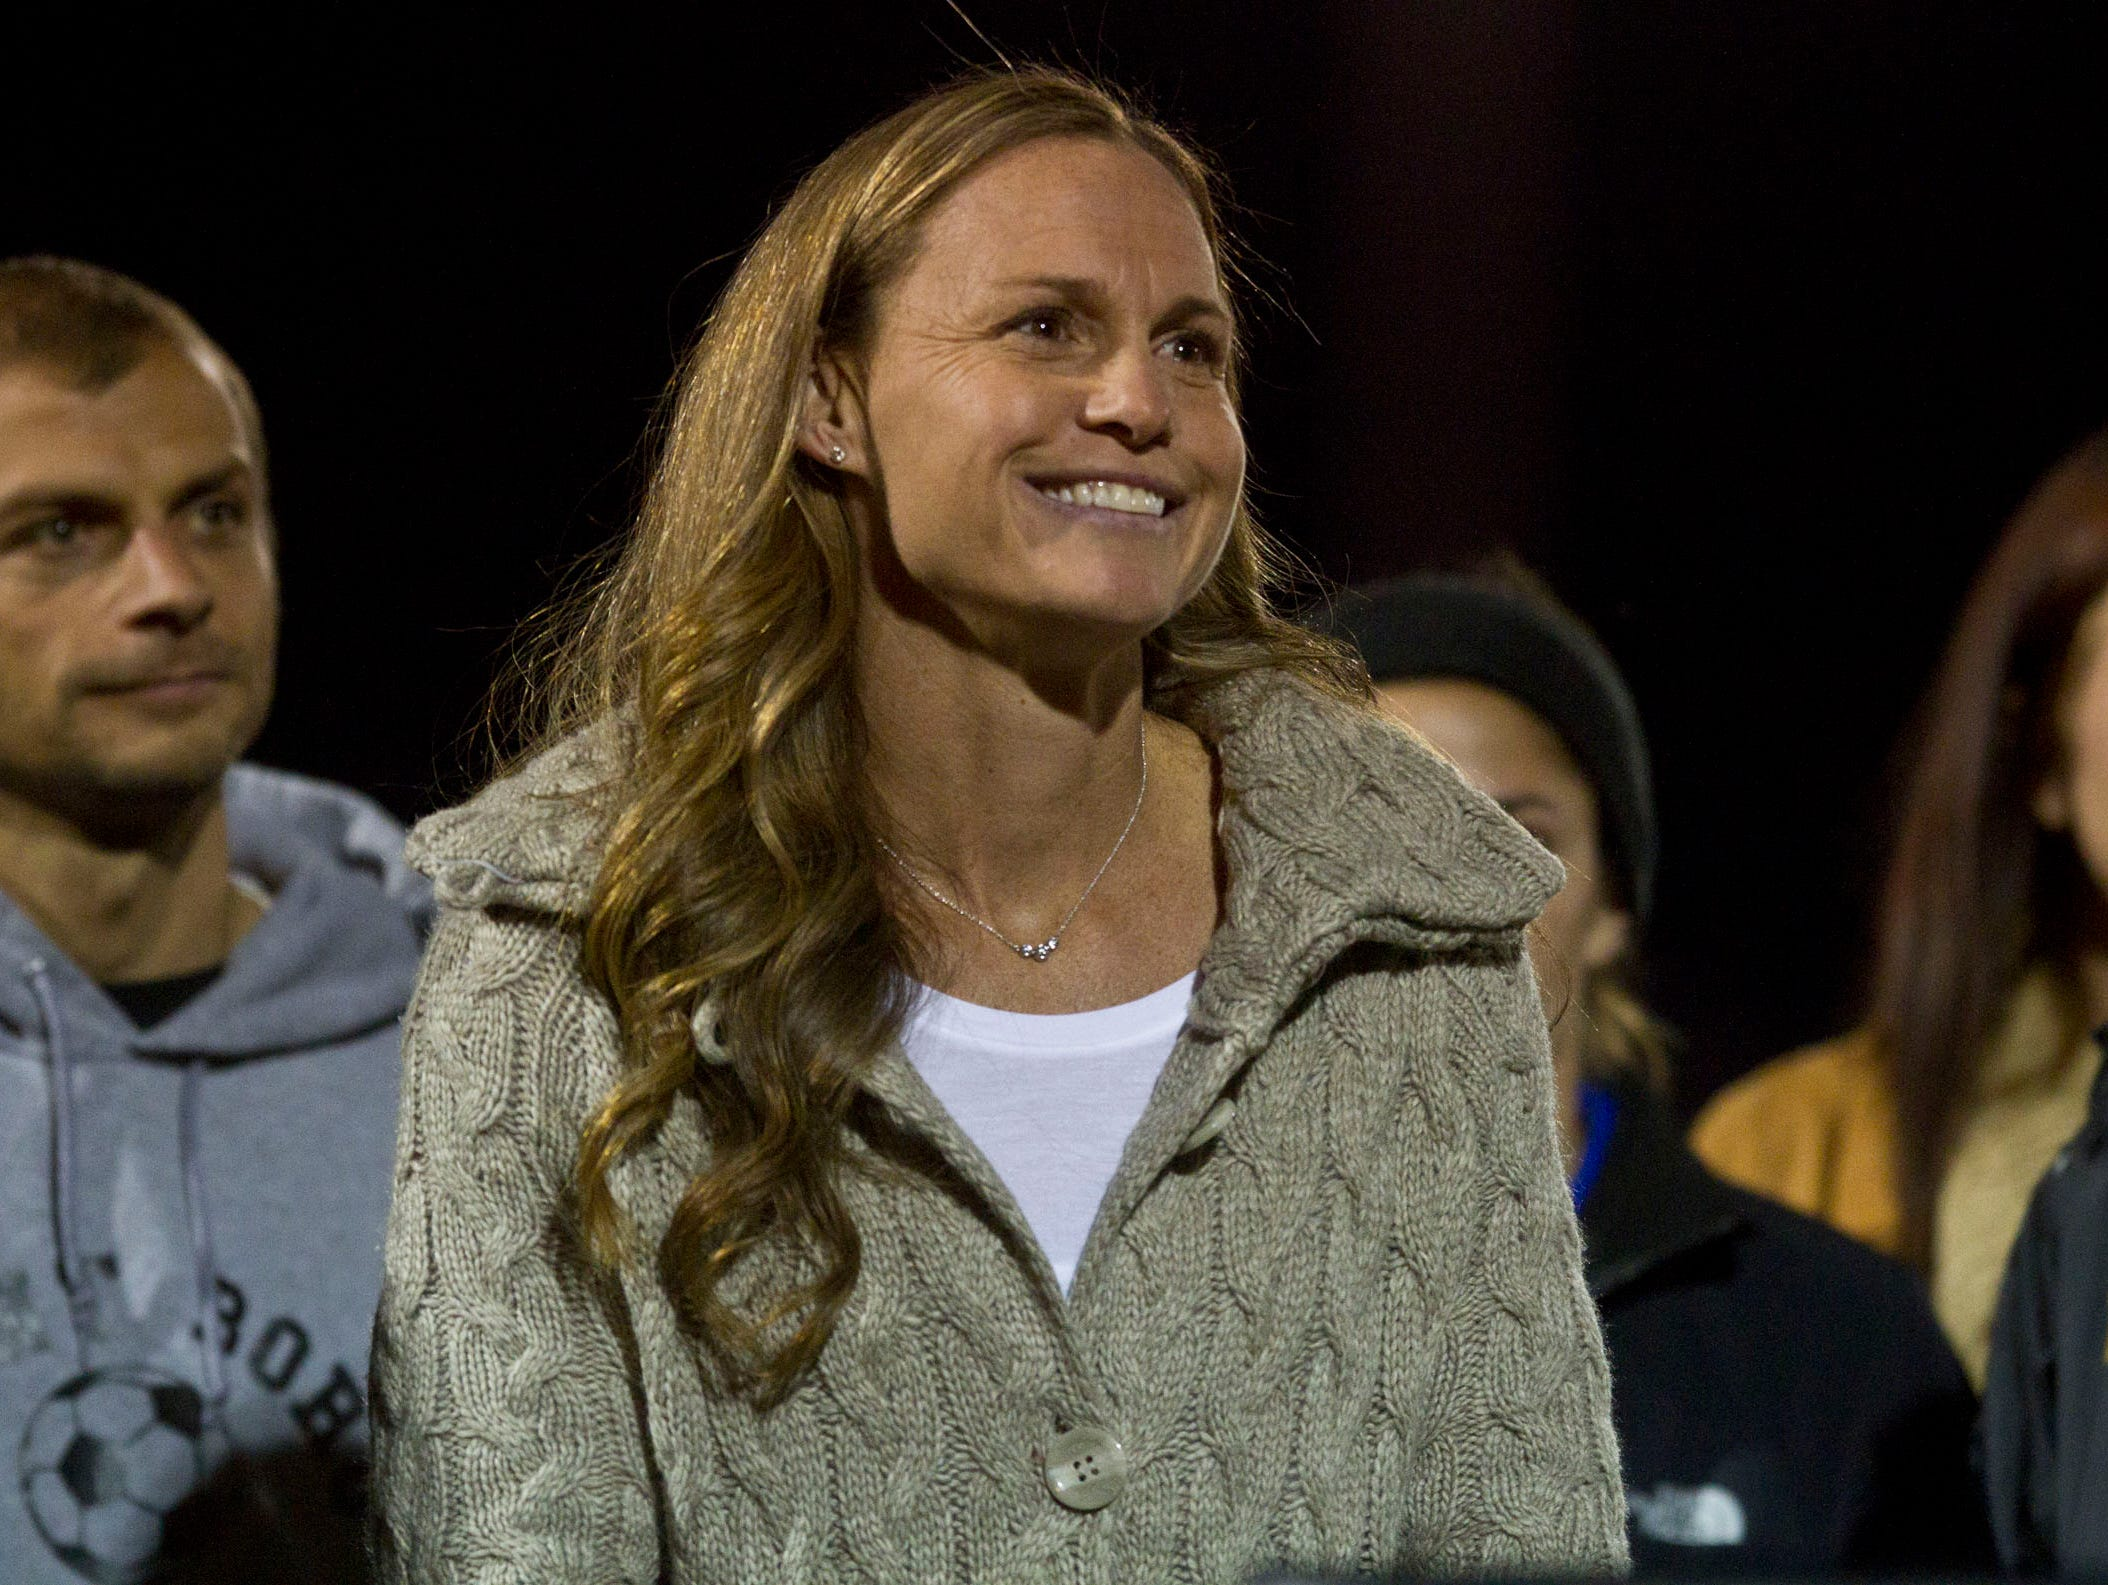 Soccer star Christie Rampone is honored prior to the game. Point Boro takes the field. Raritan vs Point Pleasant Boro NJSIAA Group II playoff game. Point Pleasant, NJ Friday, November 13, 2015 @dhoodhood